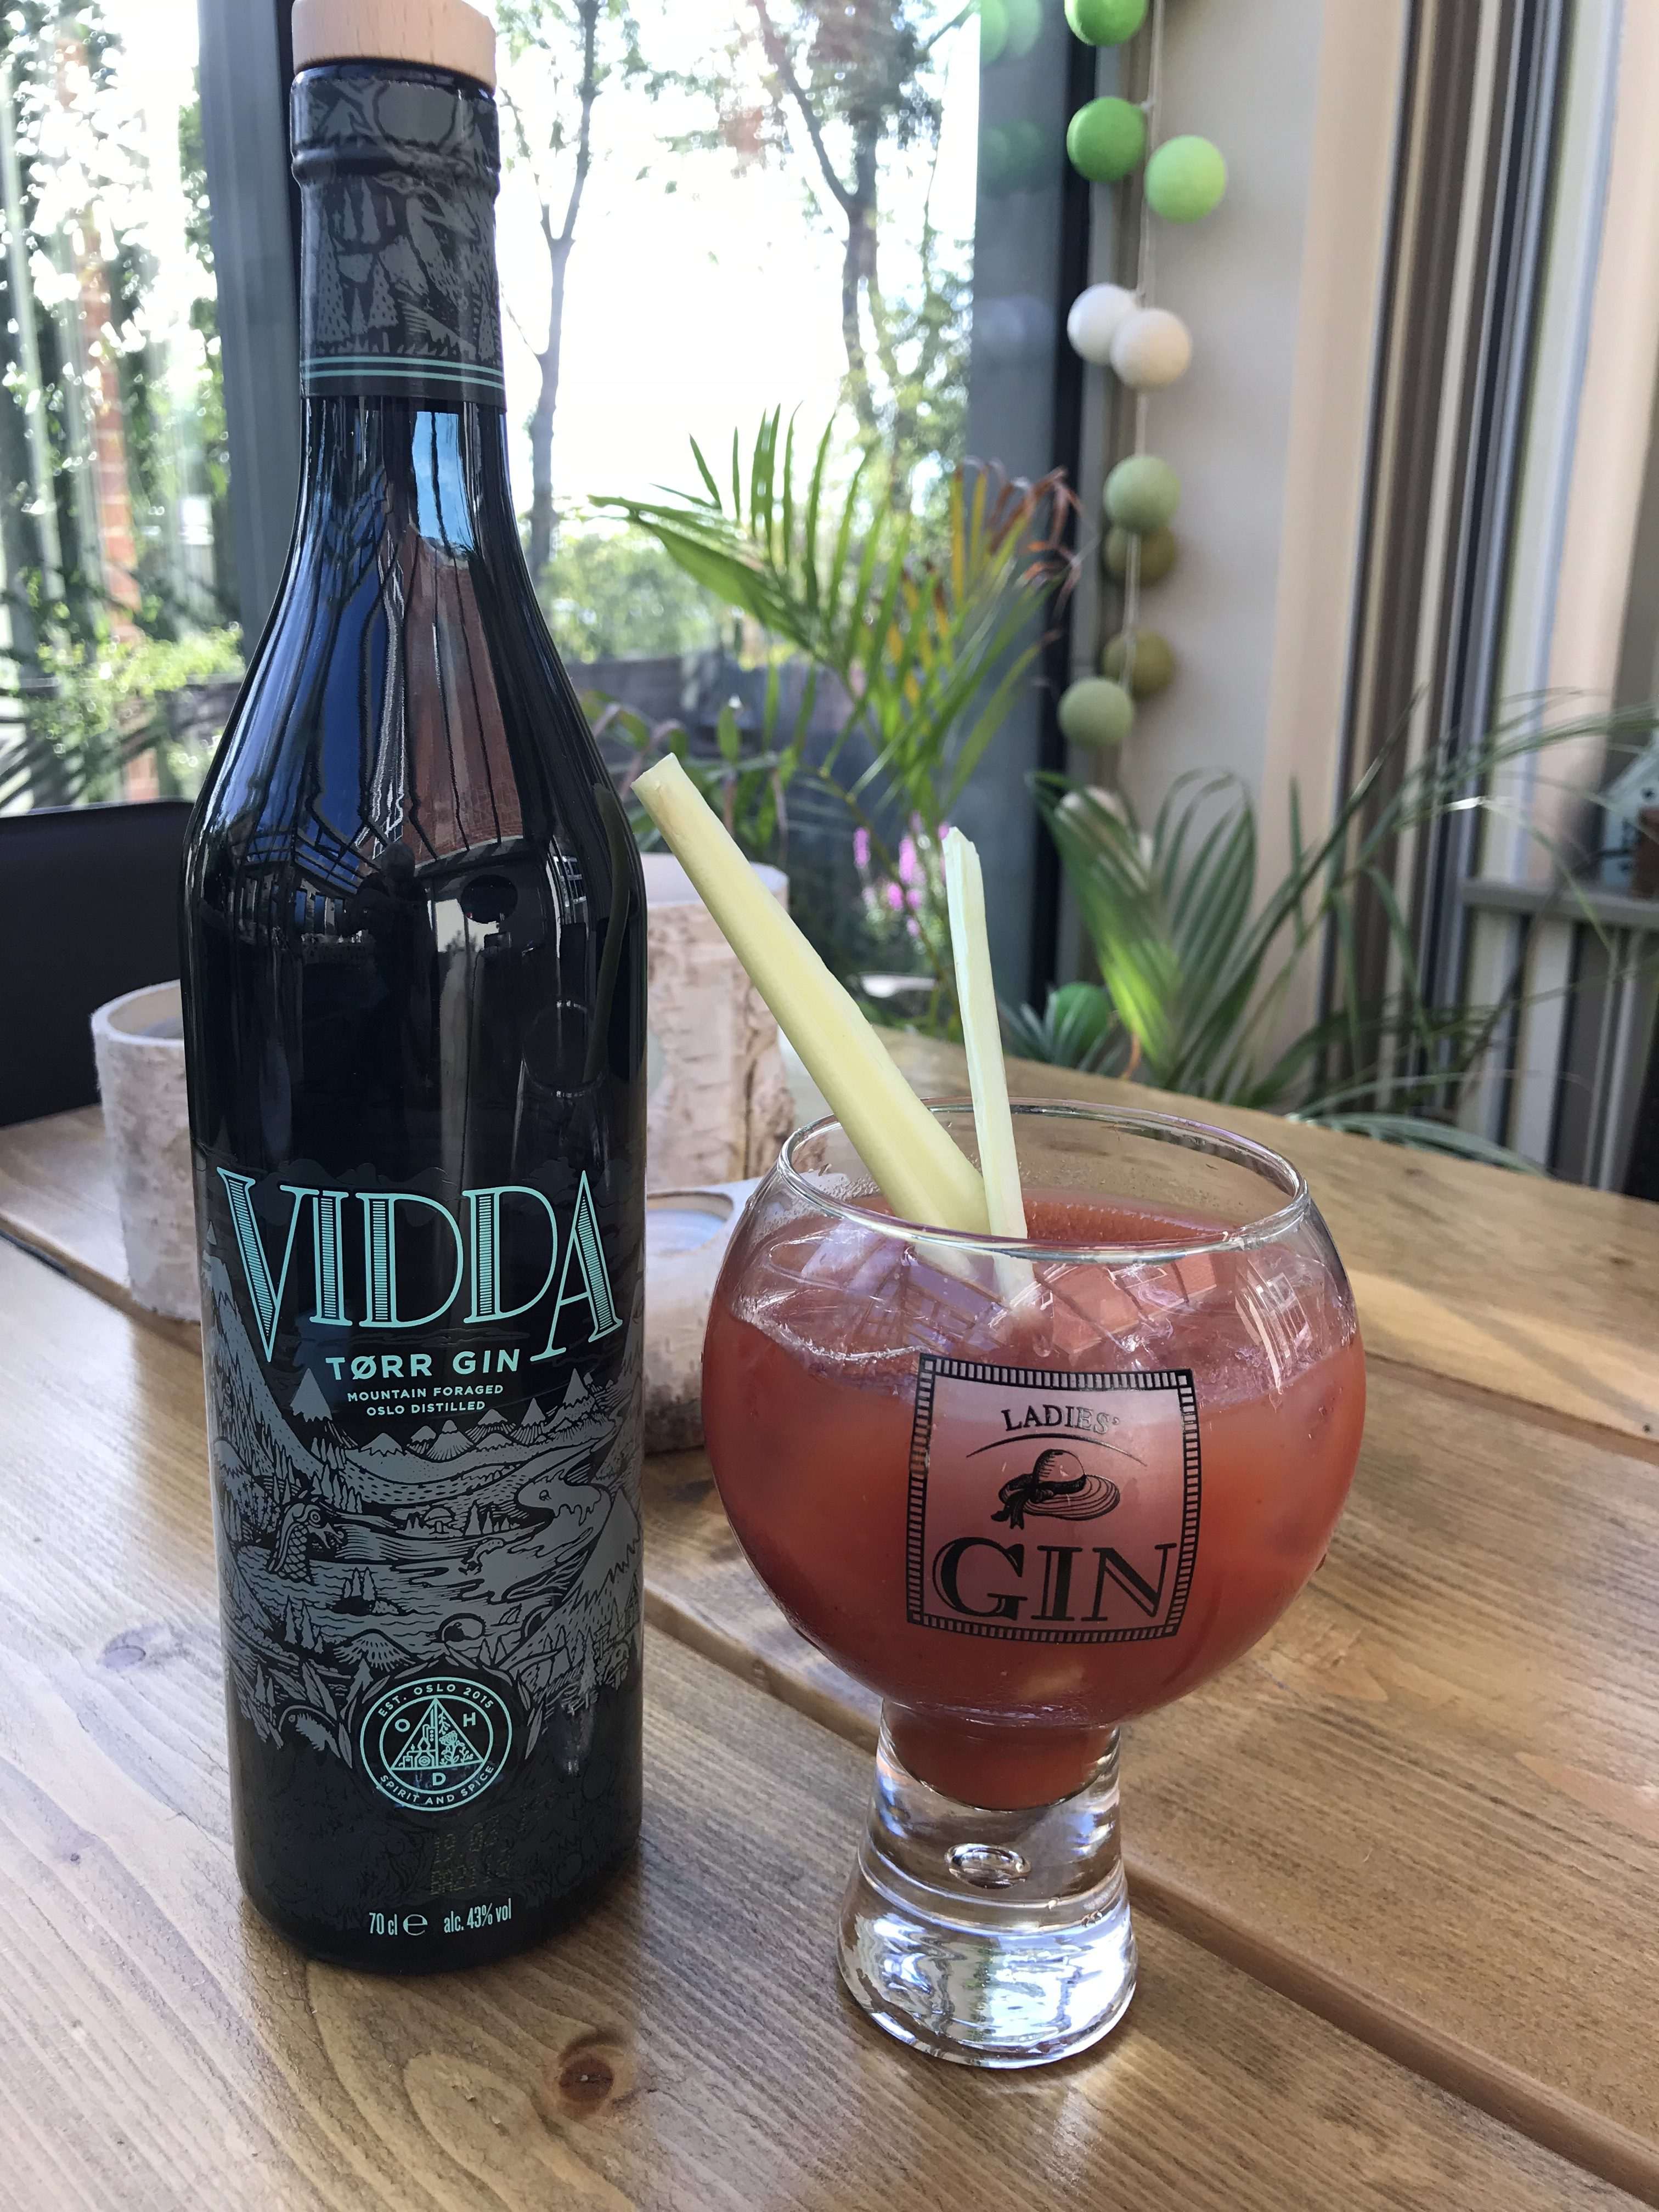 Here is the Vidda Torr Gin fro Oslo, Norway.